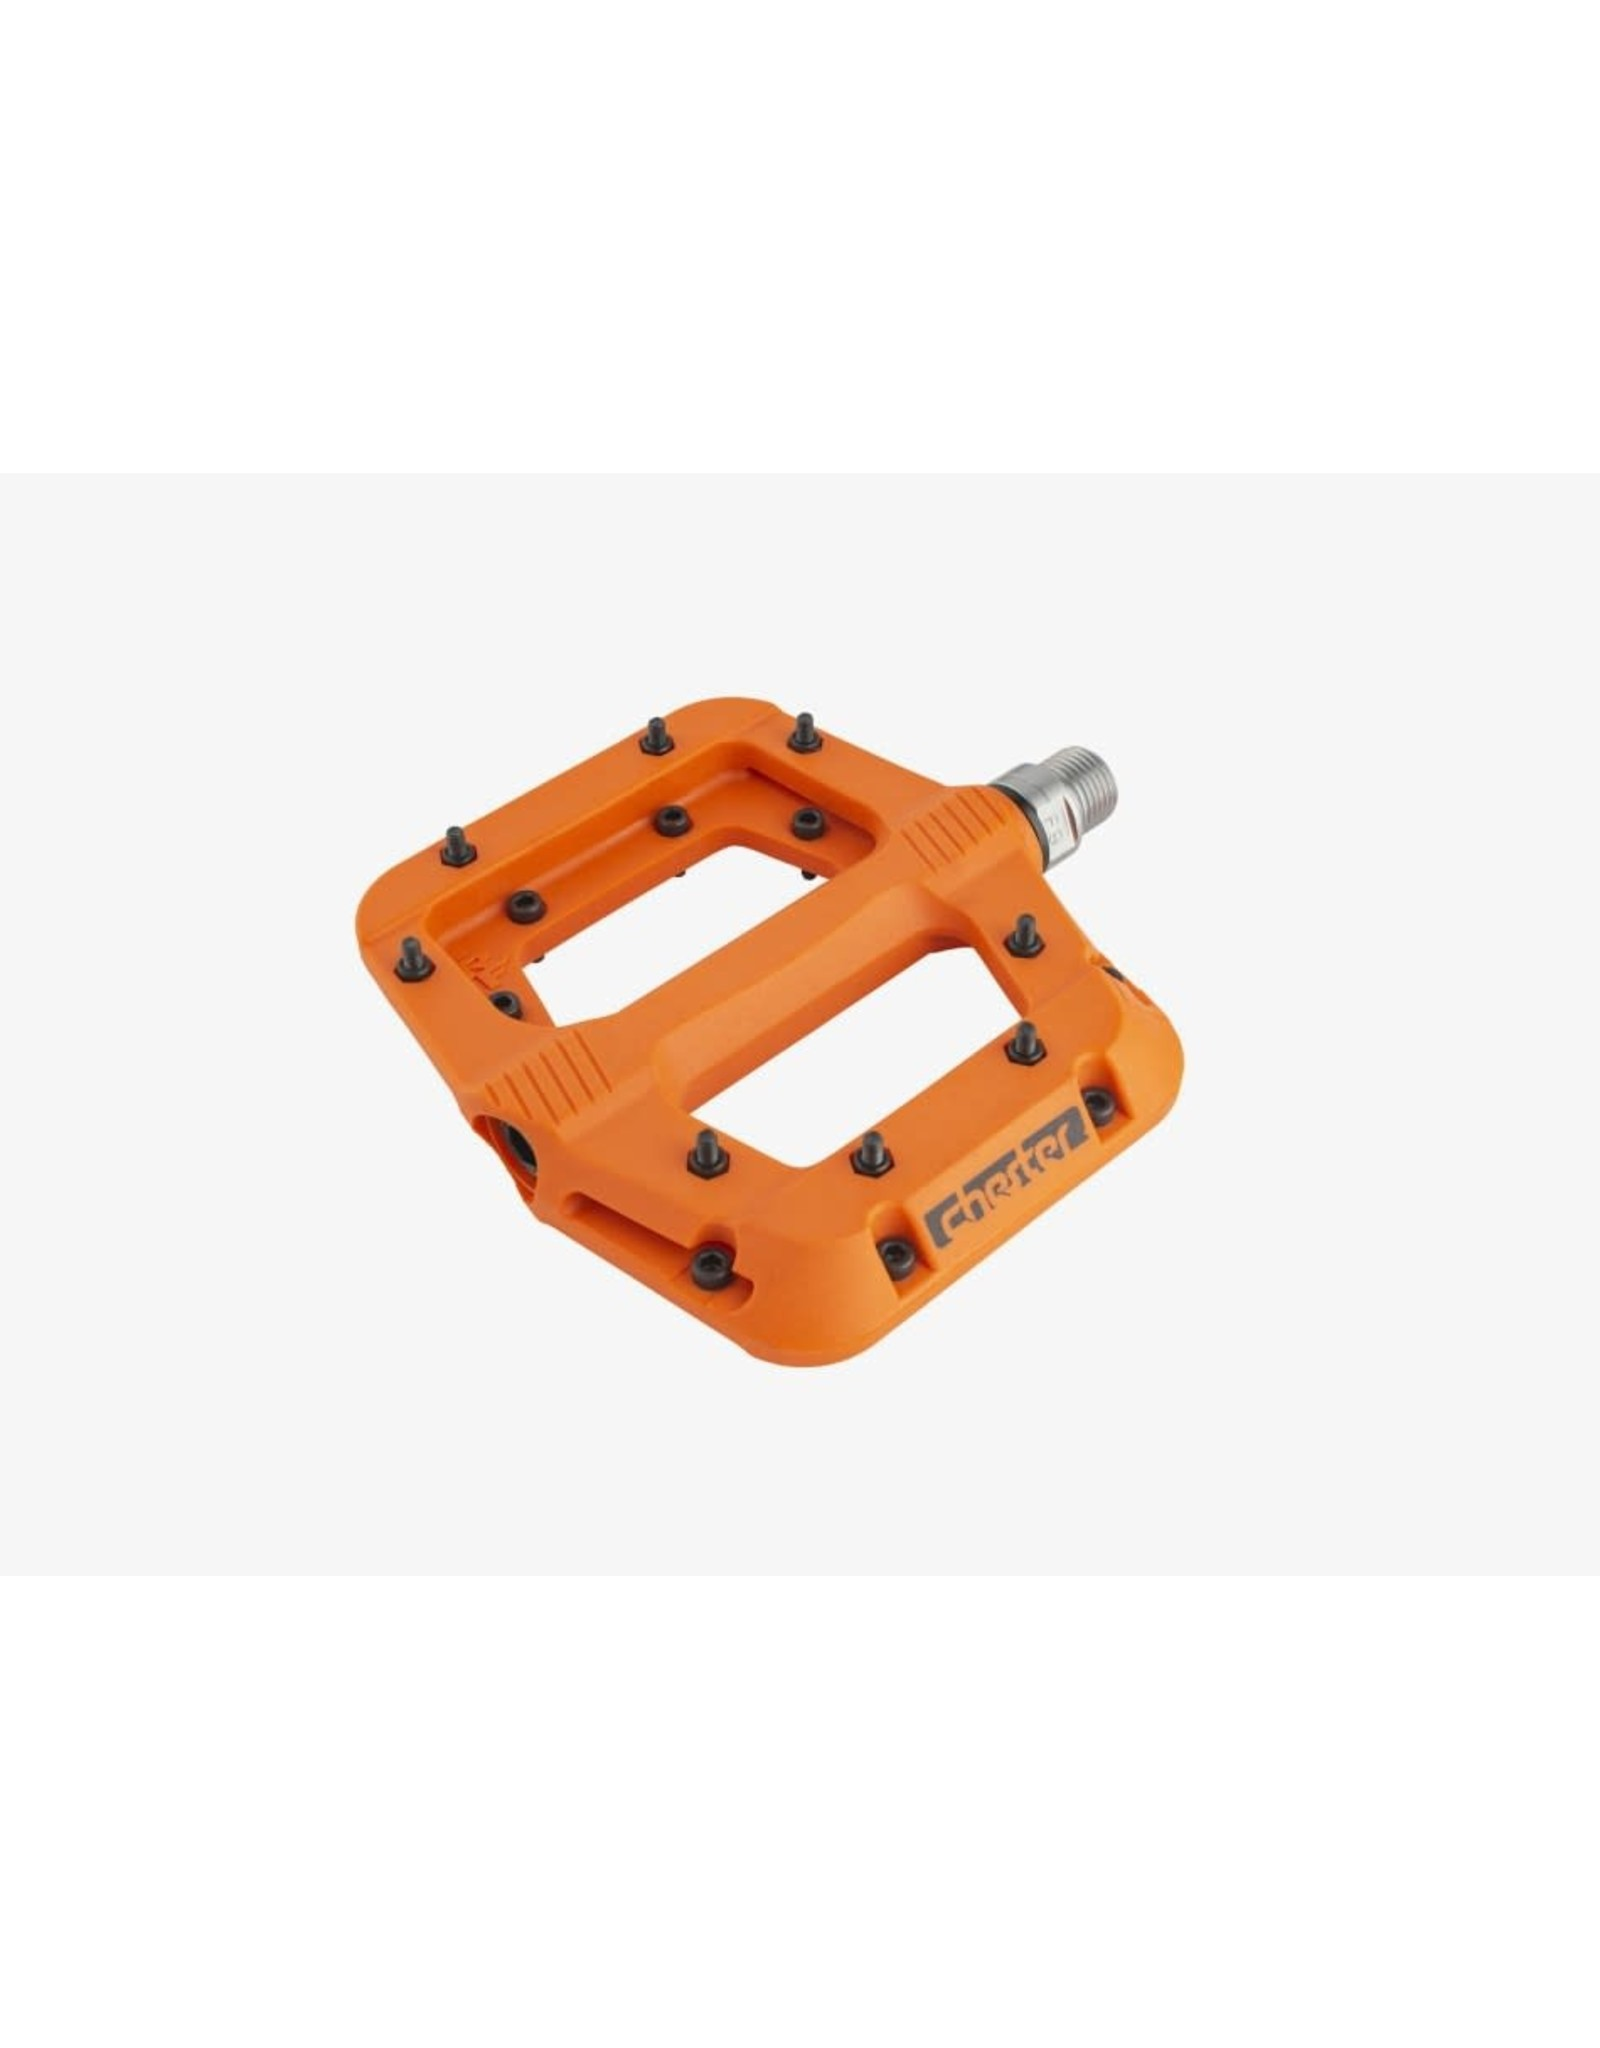 RaceFace Chester Pedals-Platform, Composite, Orange